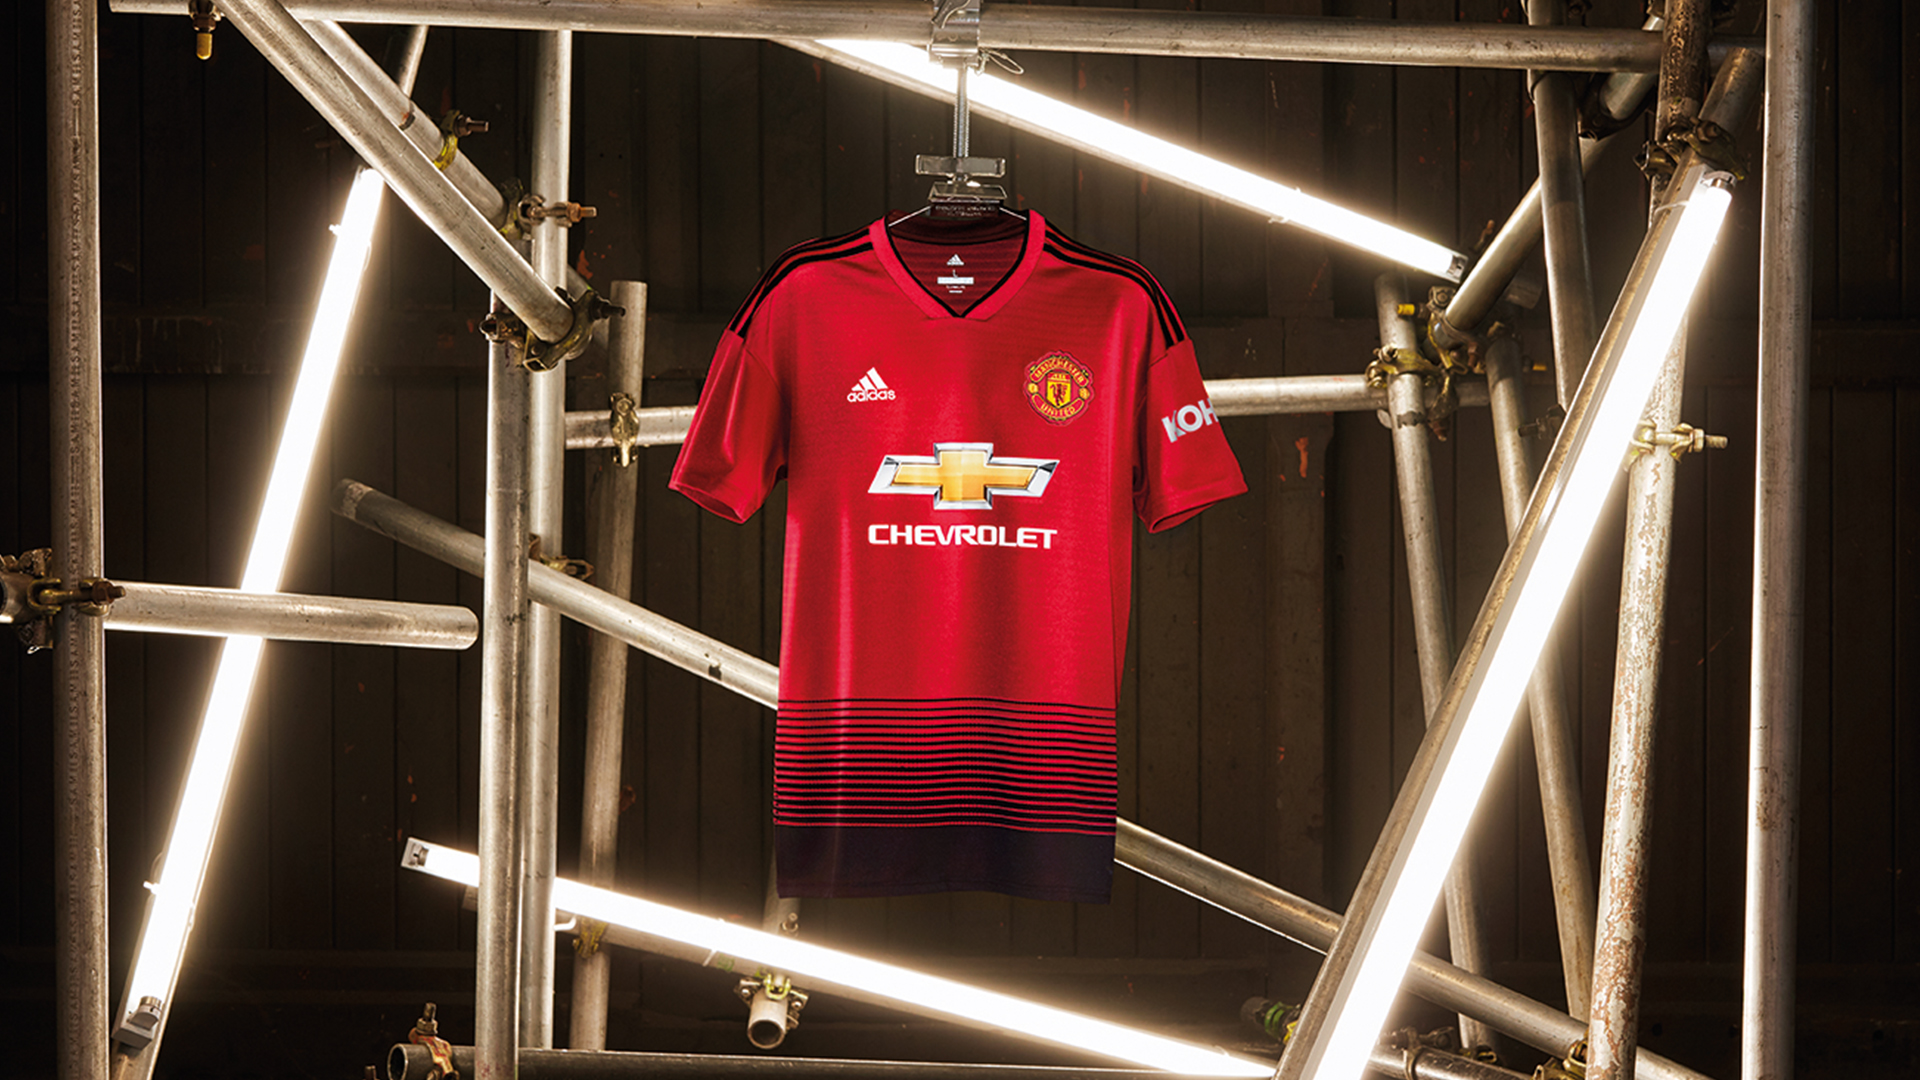 2630bc0dfc7 SINGAPORE, 17 JULY 2018 –adidasFootball has today revealed the Manchester  United home kit for the 2018/19 season. The latest jersey marks 140 years  since ...